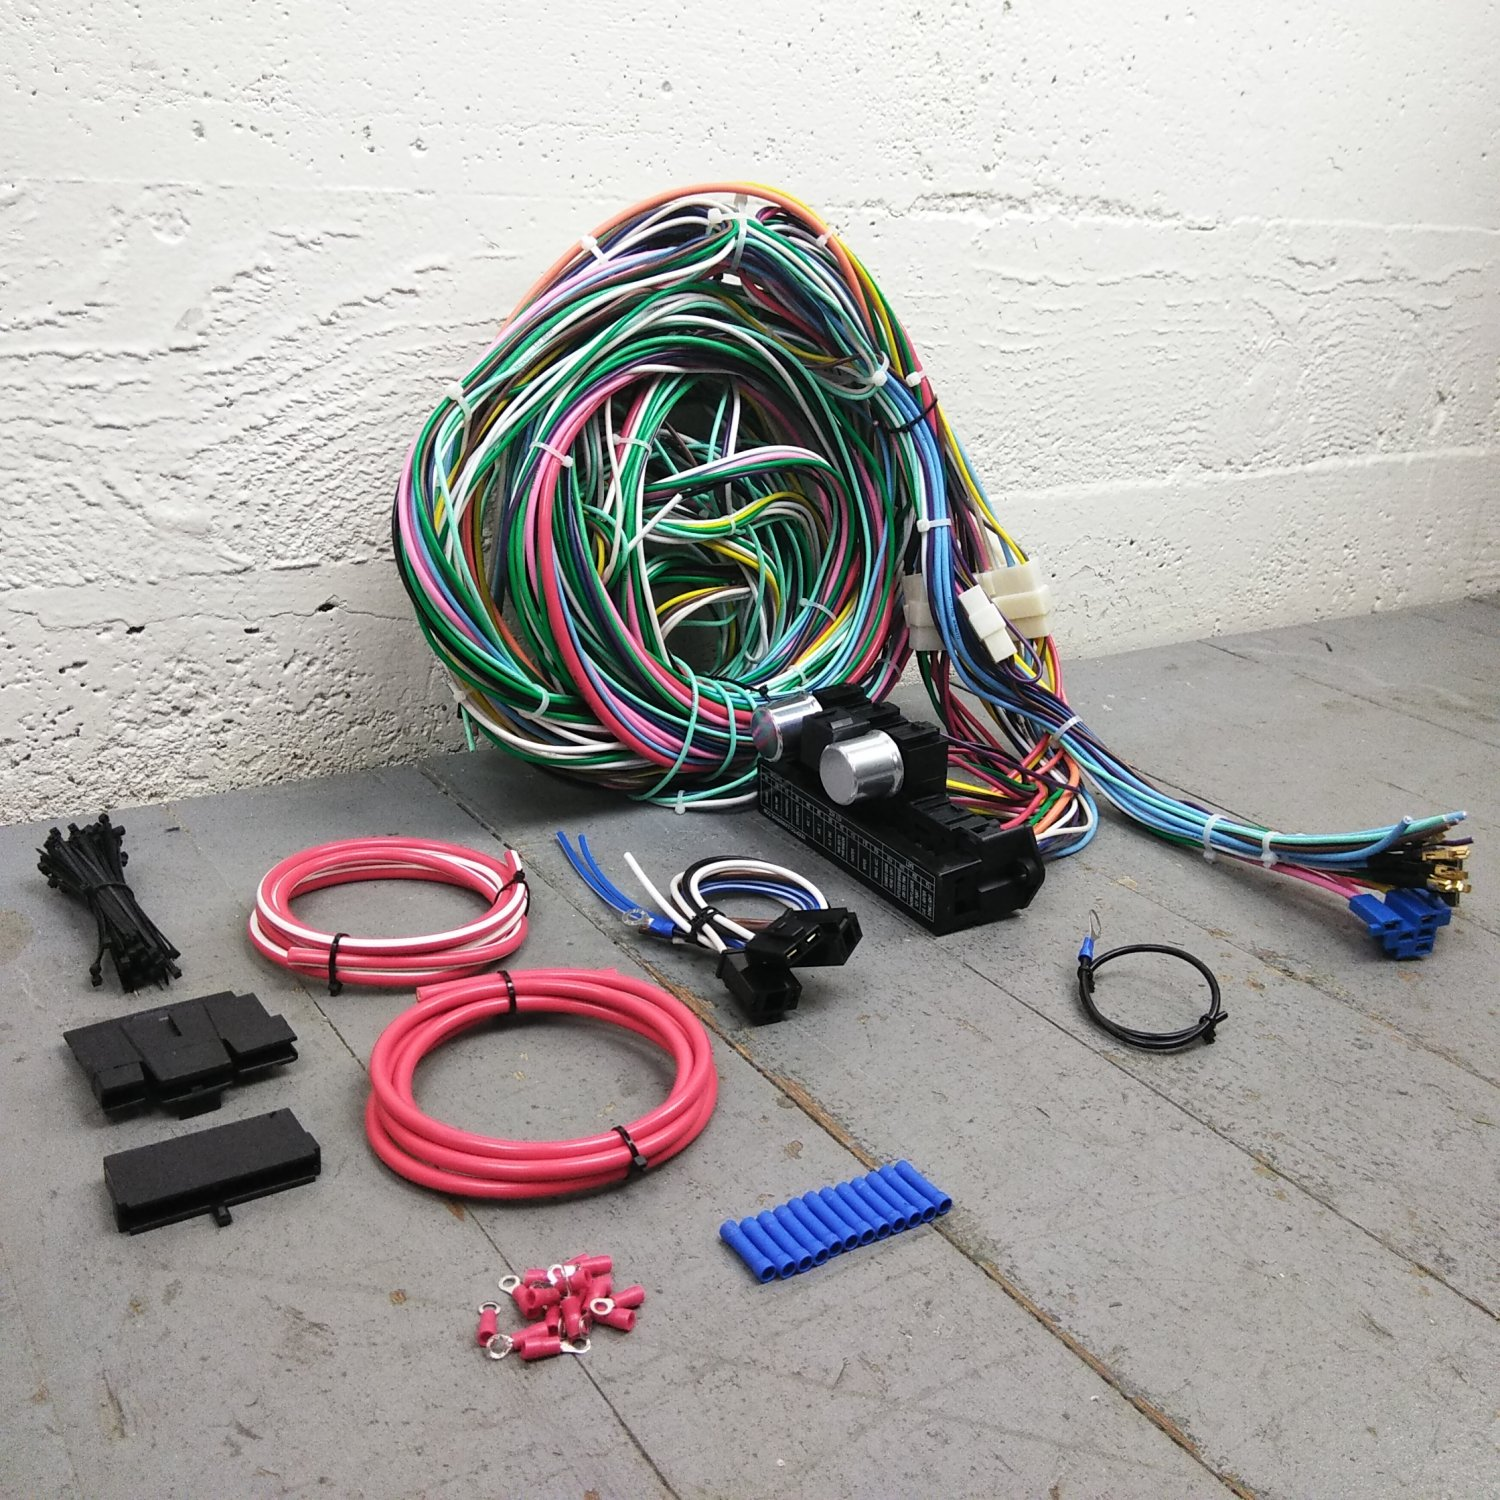 67 - 72 Chevrolet C10 C15 Rear Coil Truck Wire Harness Upgrade Kit fits  painless. Bar_Product_Description_C